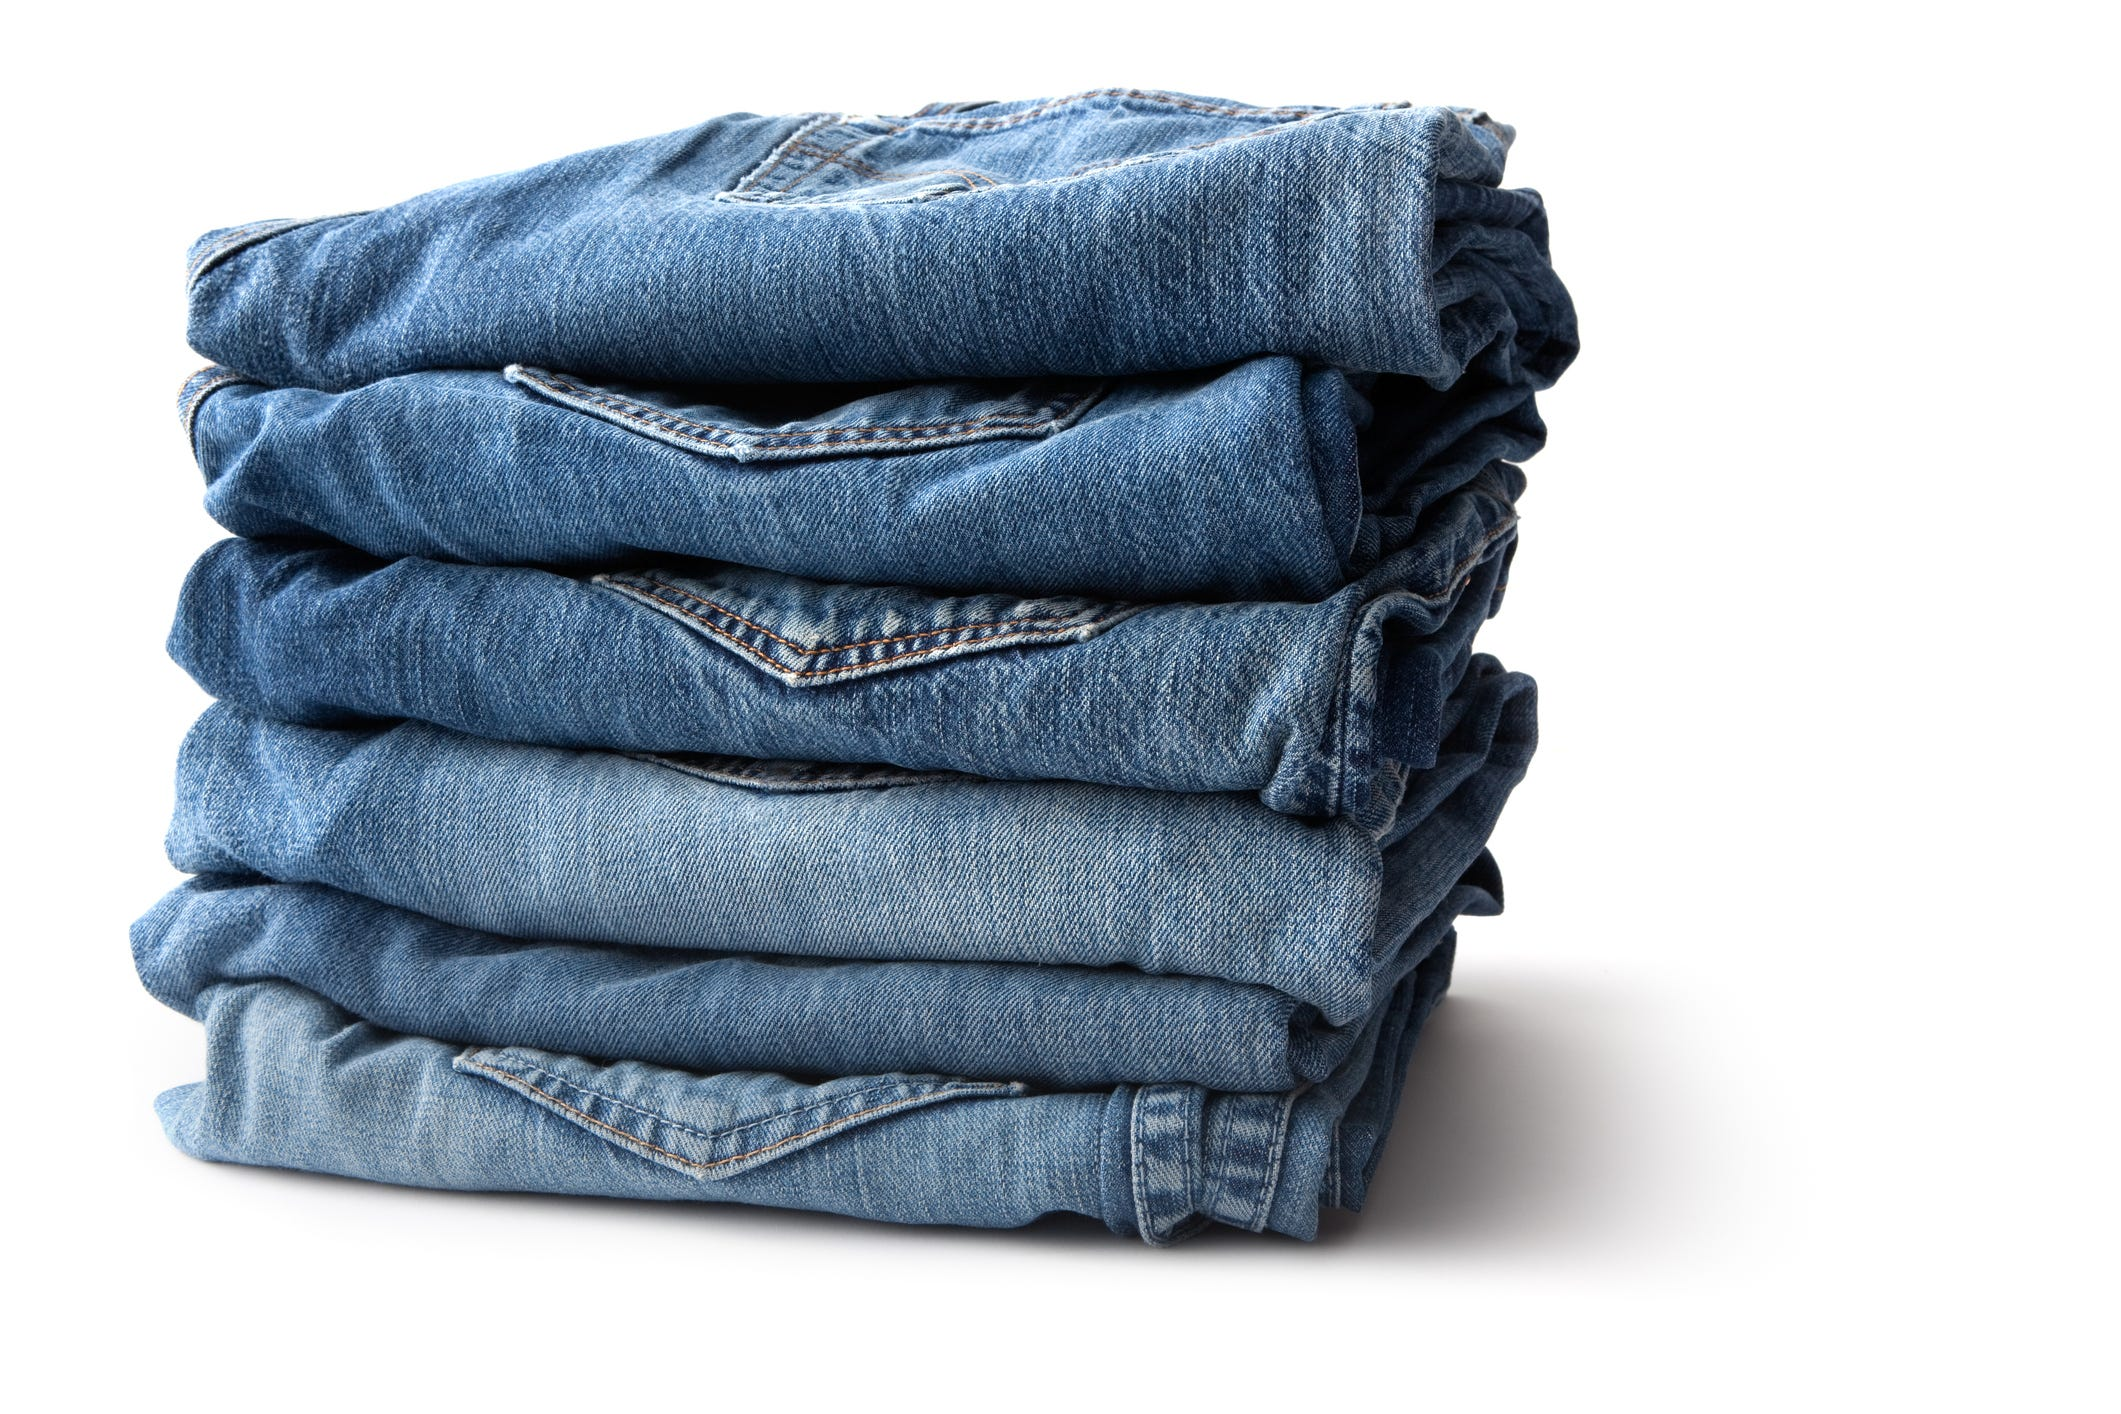 Report: Lee, Wrangler owner may exit the jeans business